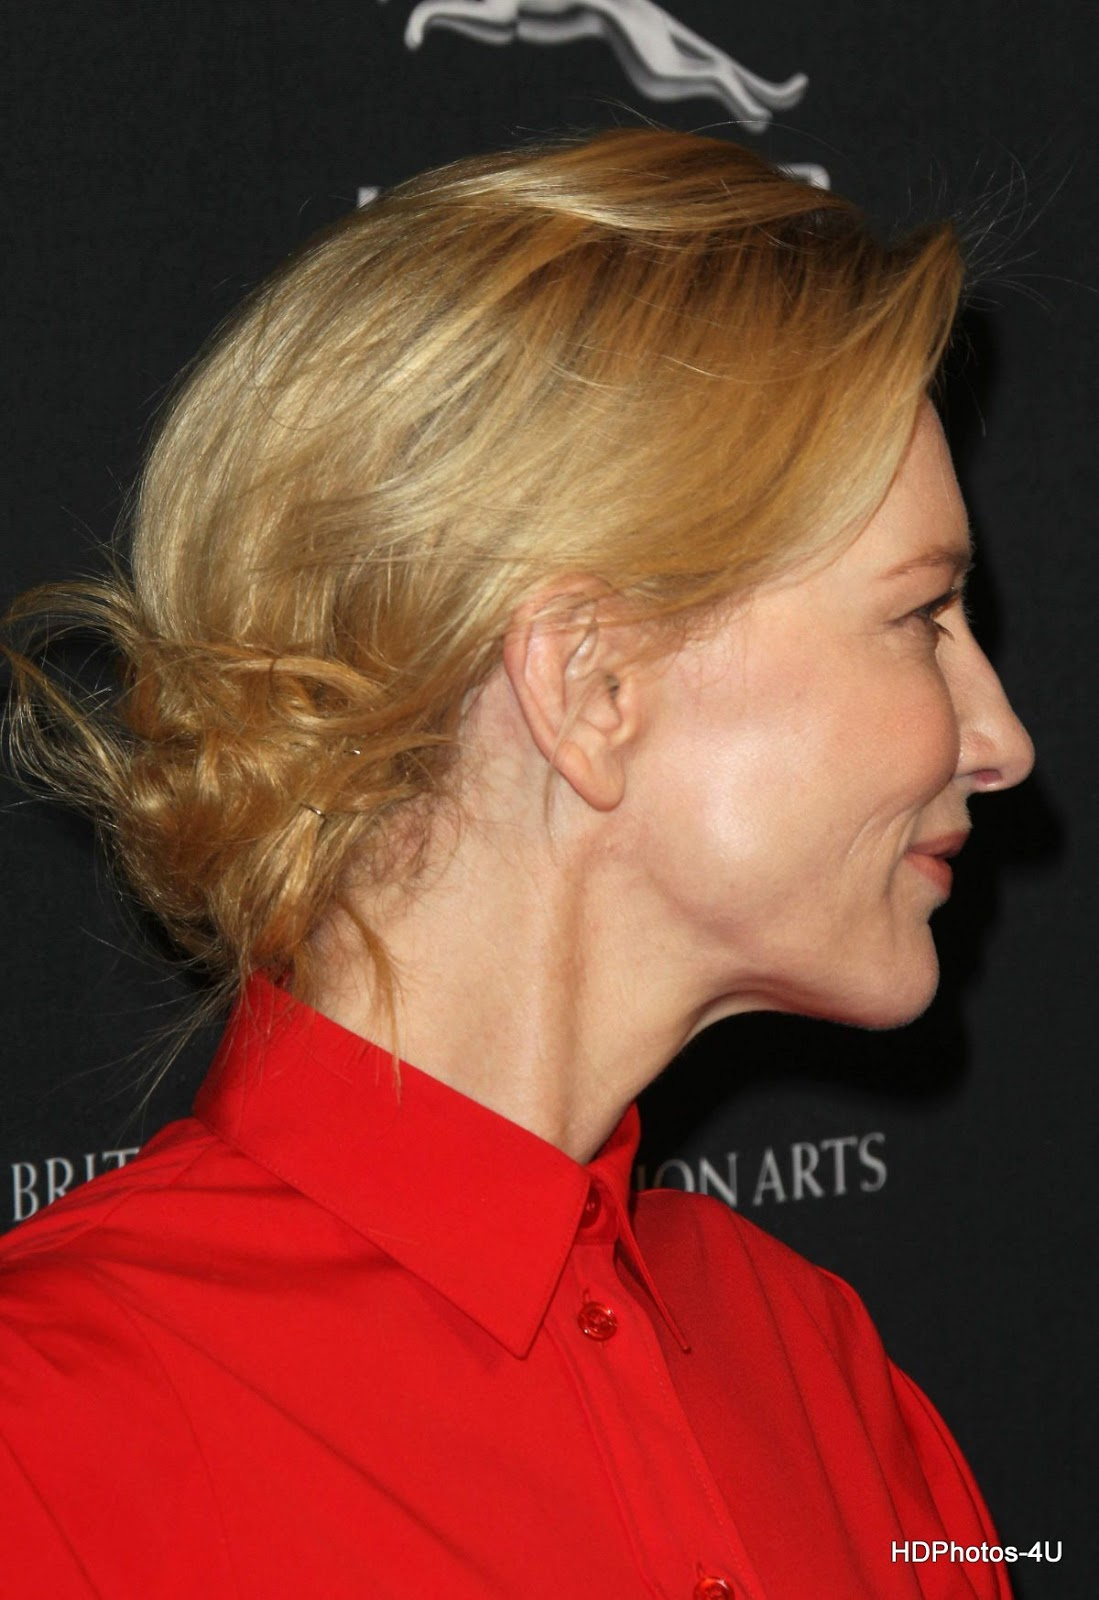 BAFTA Full HQ Photos: Cate Blanchett at 2014 BAFTA LA Awards in Beverly Hills